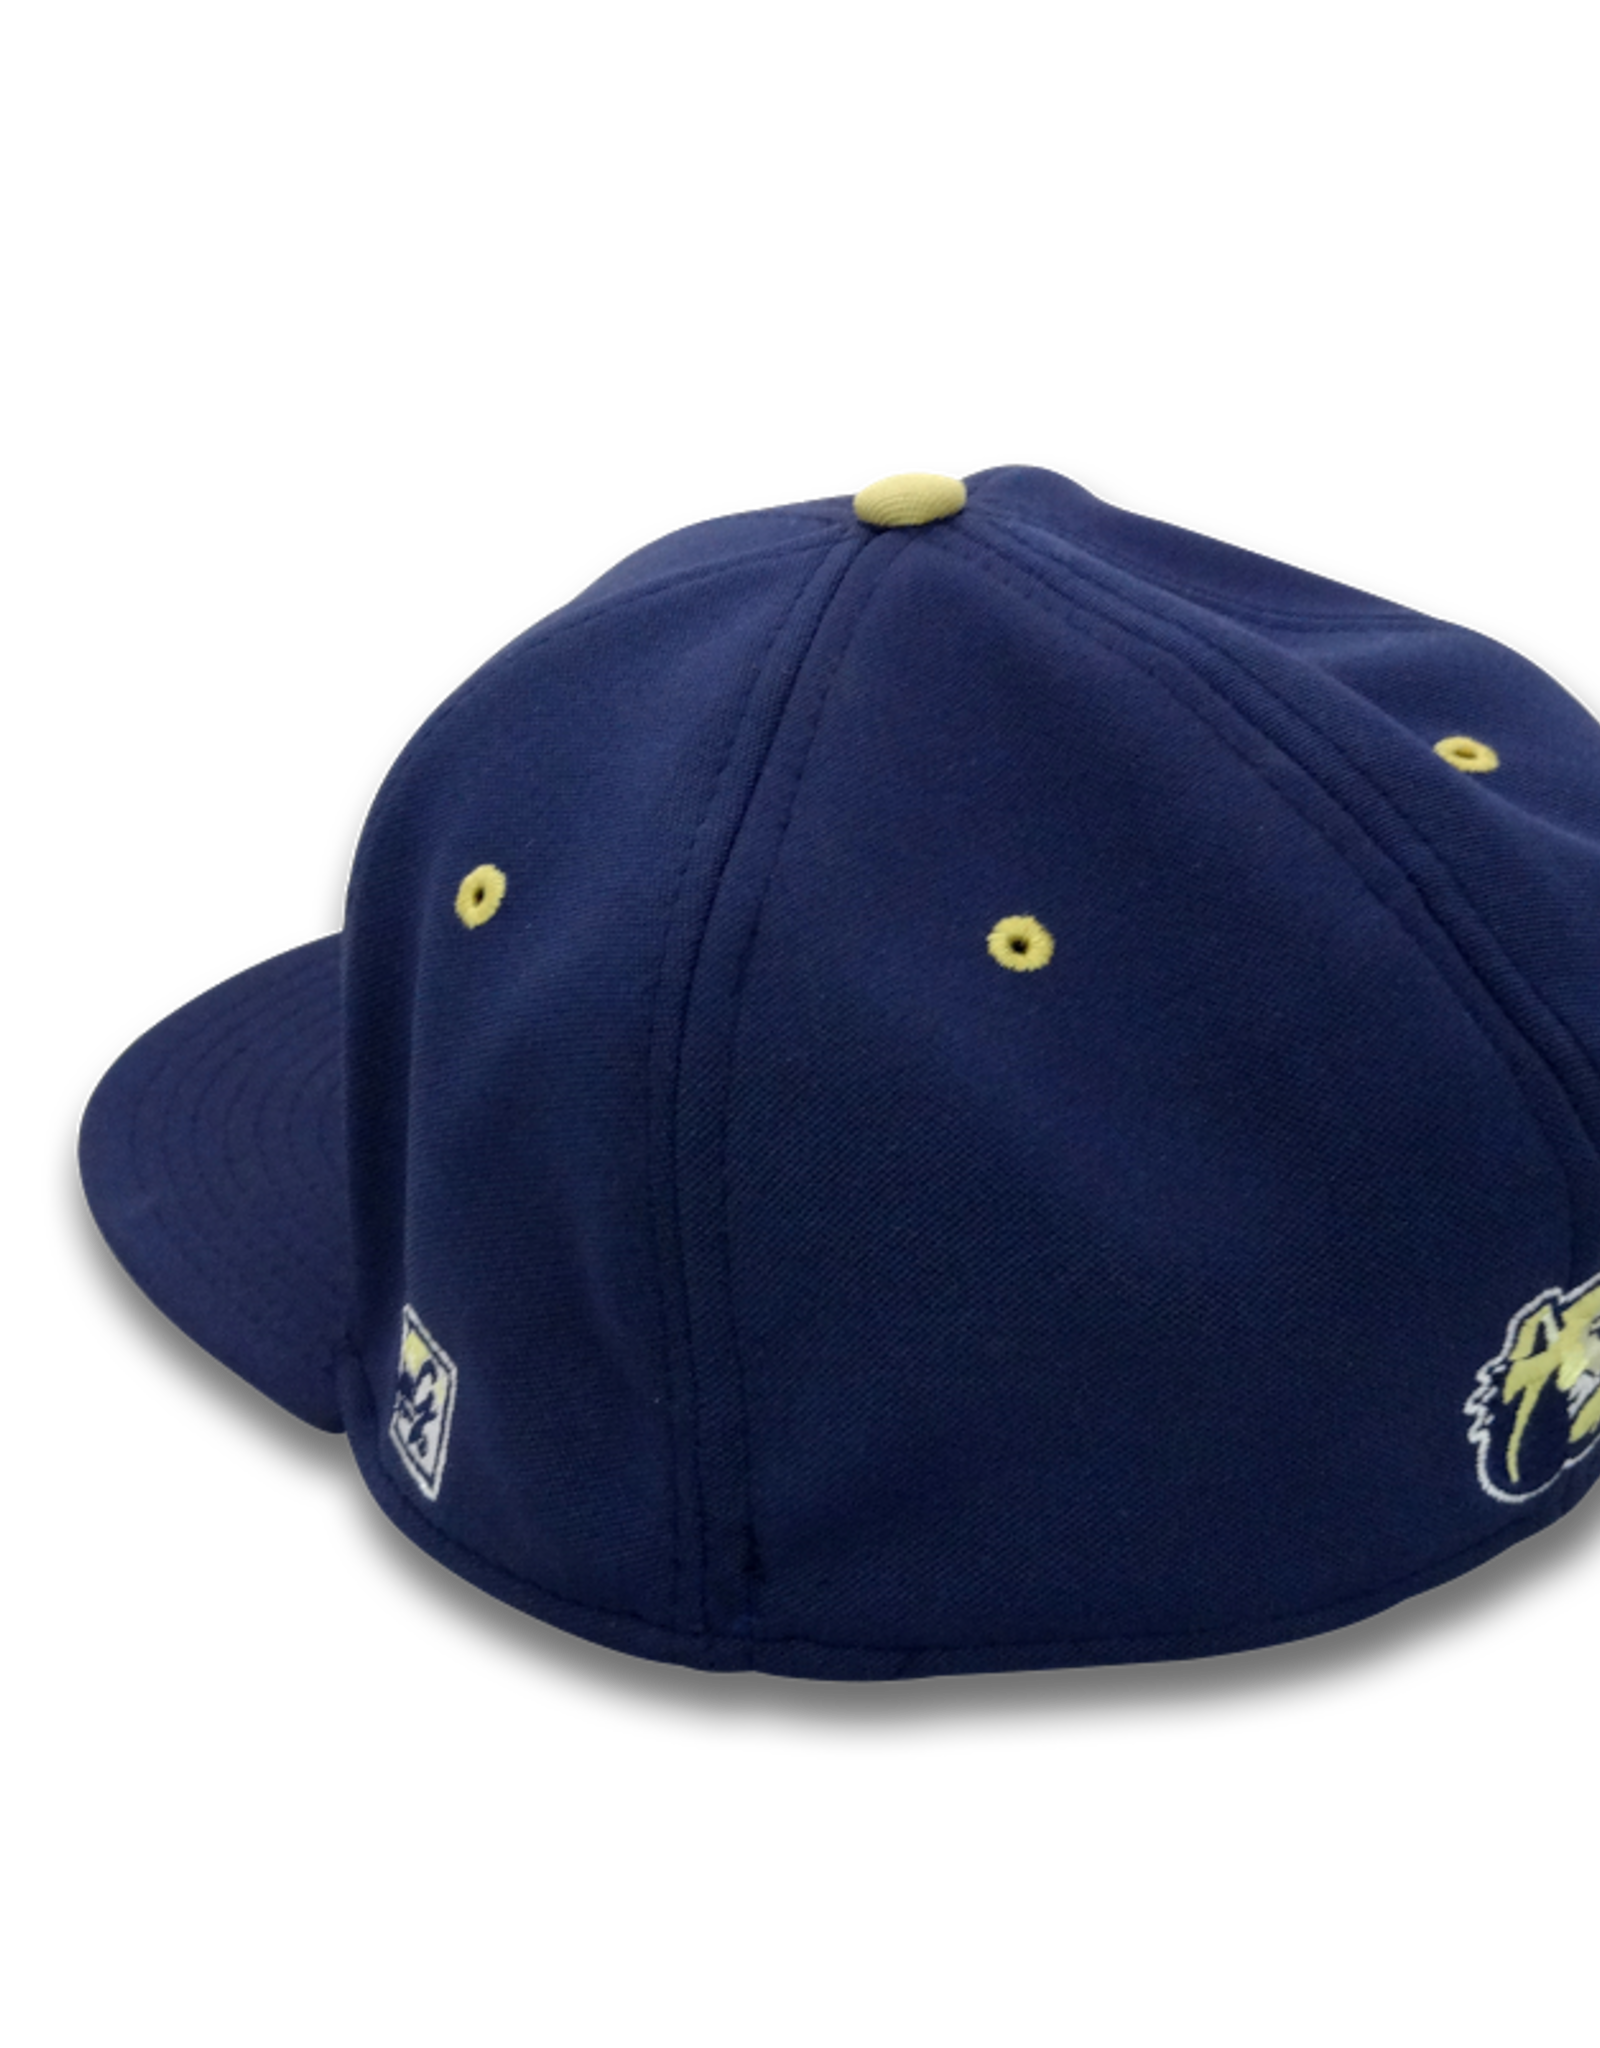 The Game Navy Flex Fit W Baseball Hat LG